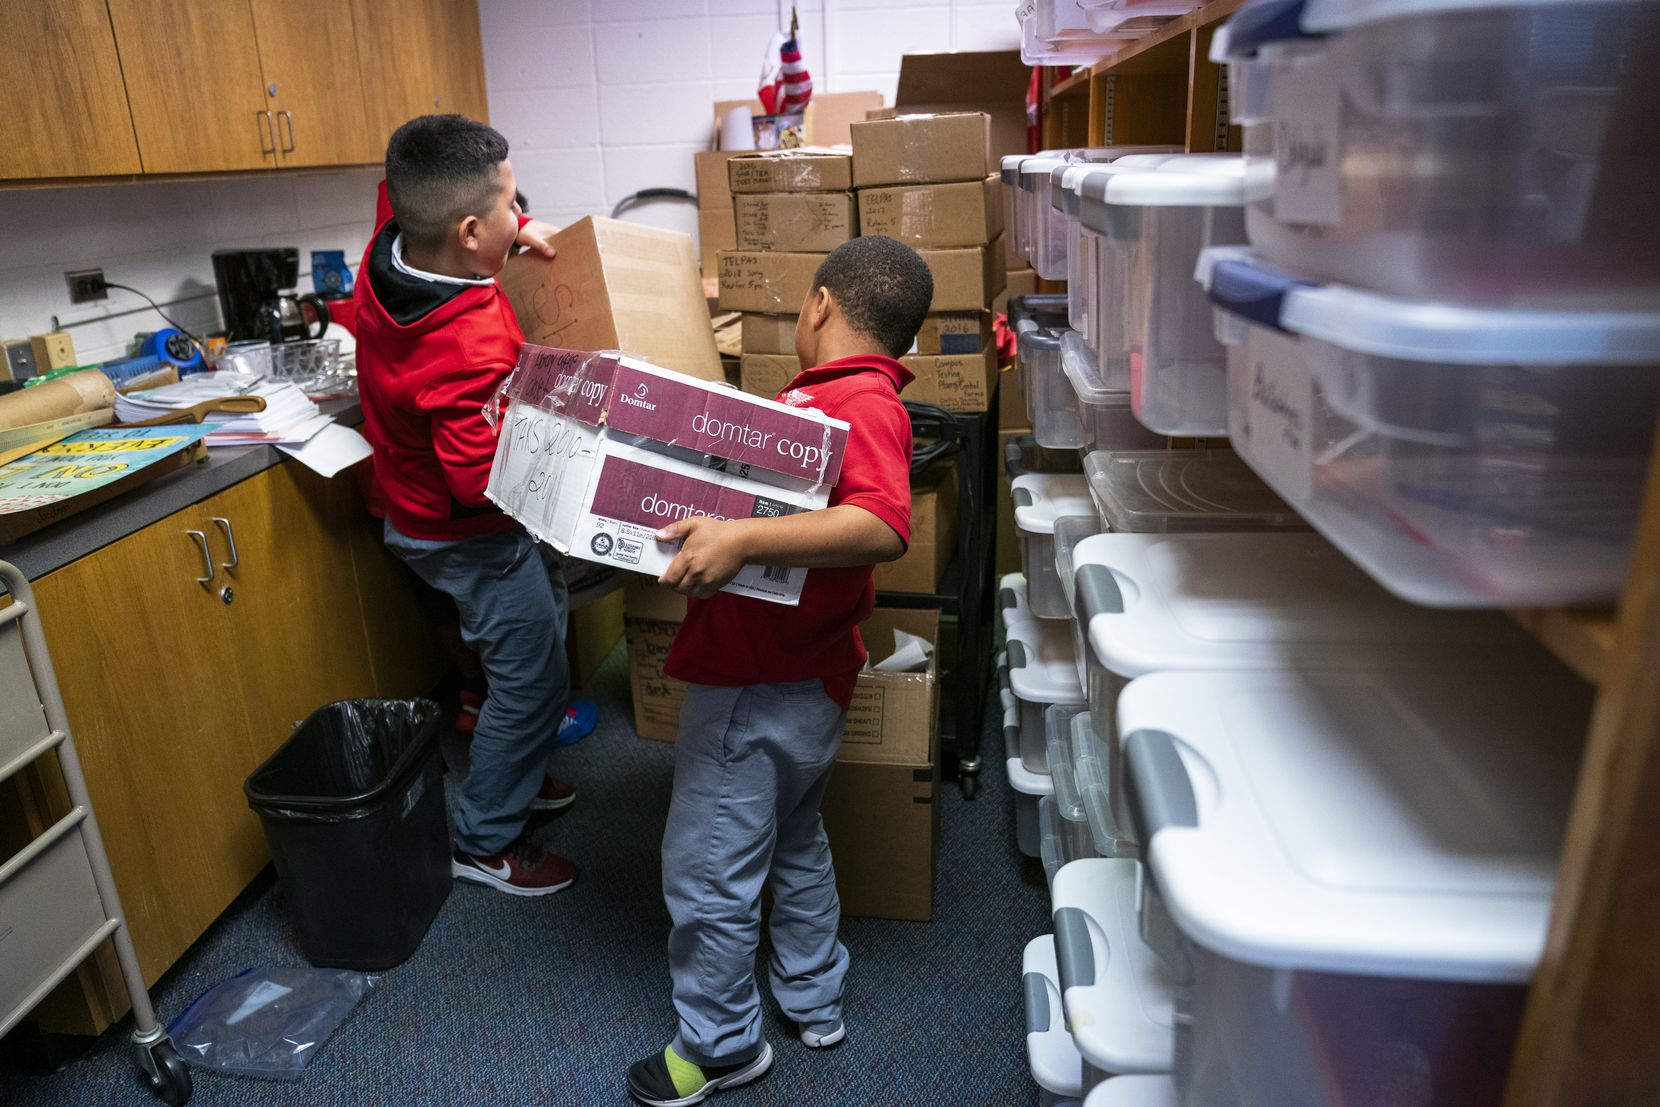 Students help moves boxes of books and supplies in the library at the new Walnut Hill Elementary. The district continues to work on a needs inventory to help determine how to spend the cash donations received since the Oct. 20 tornadoes.